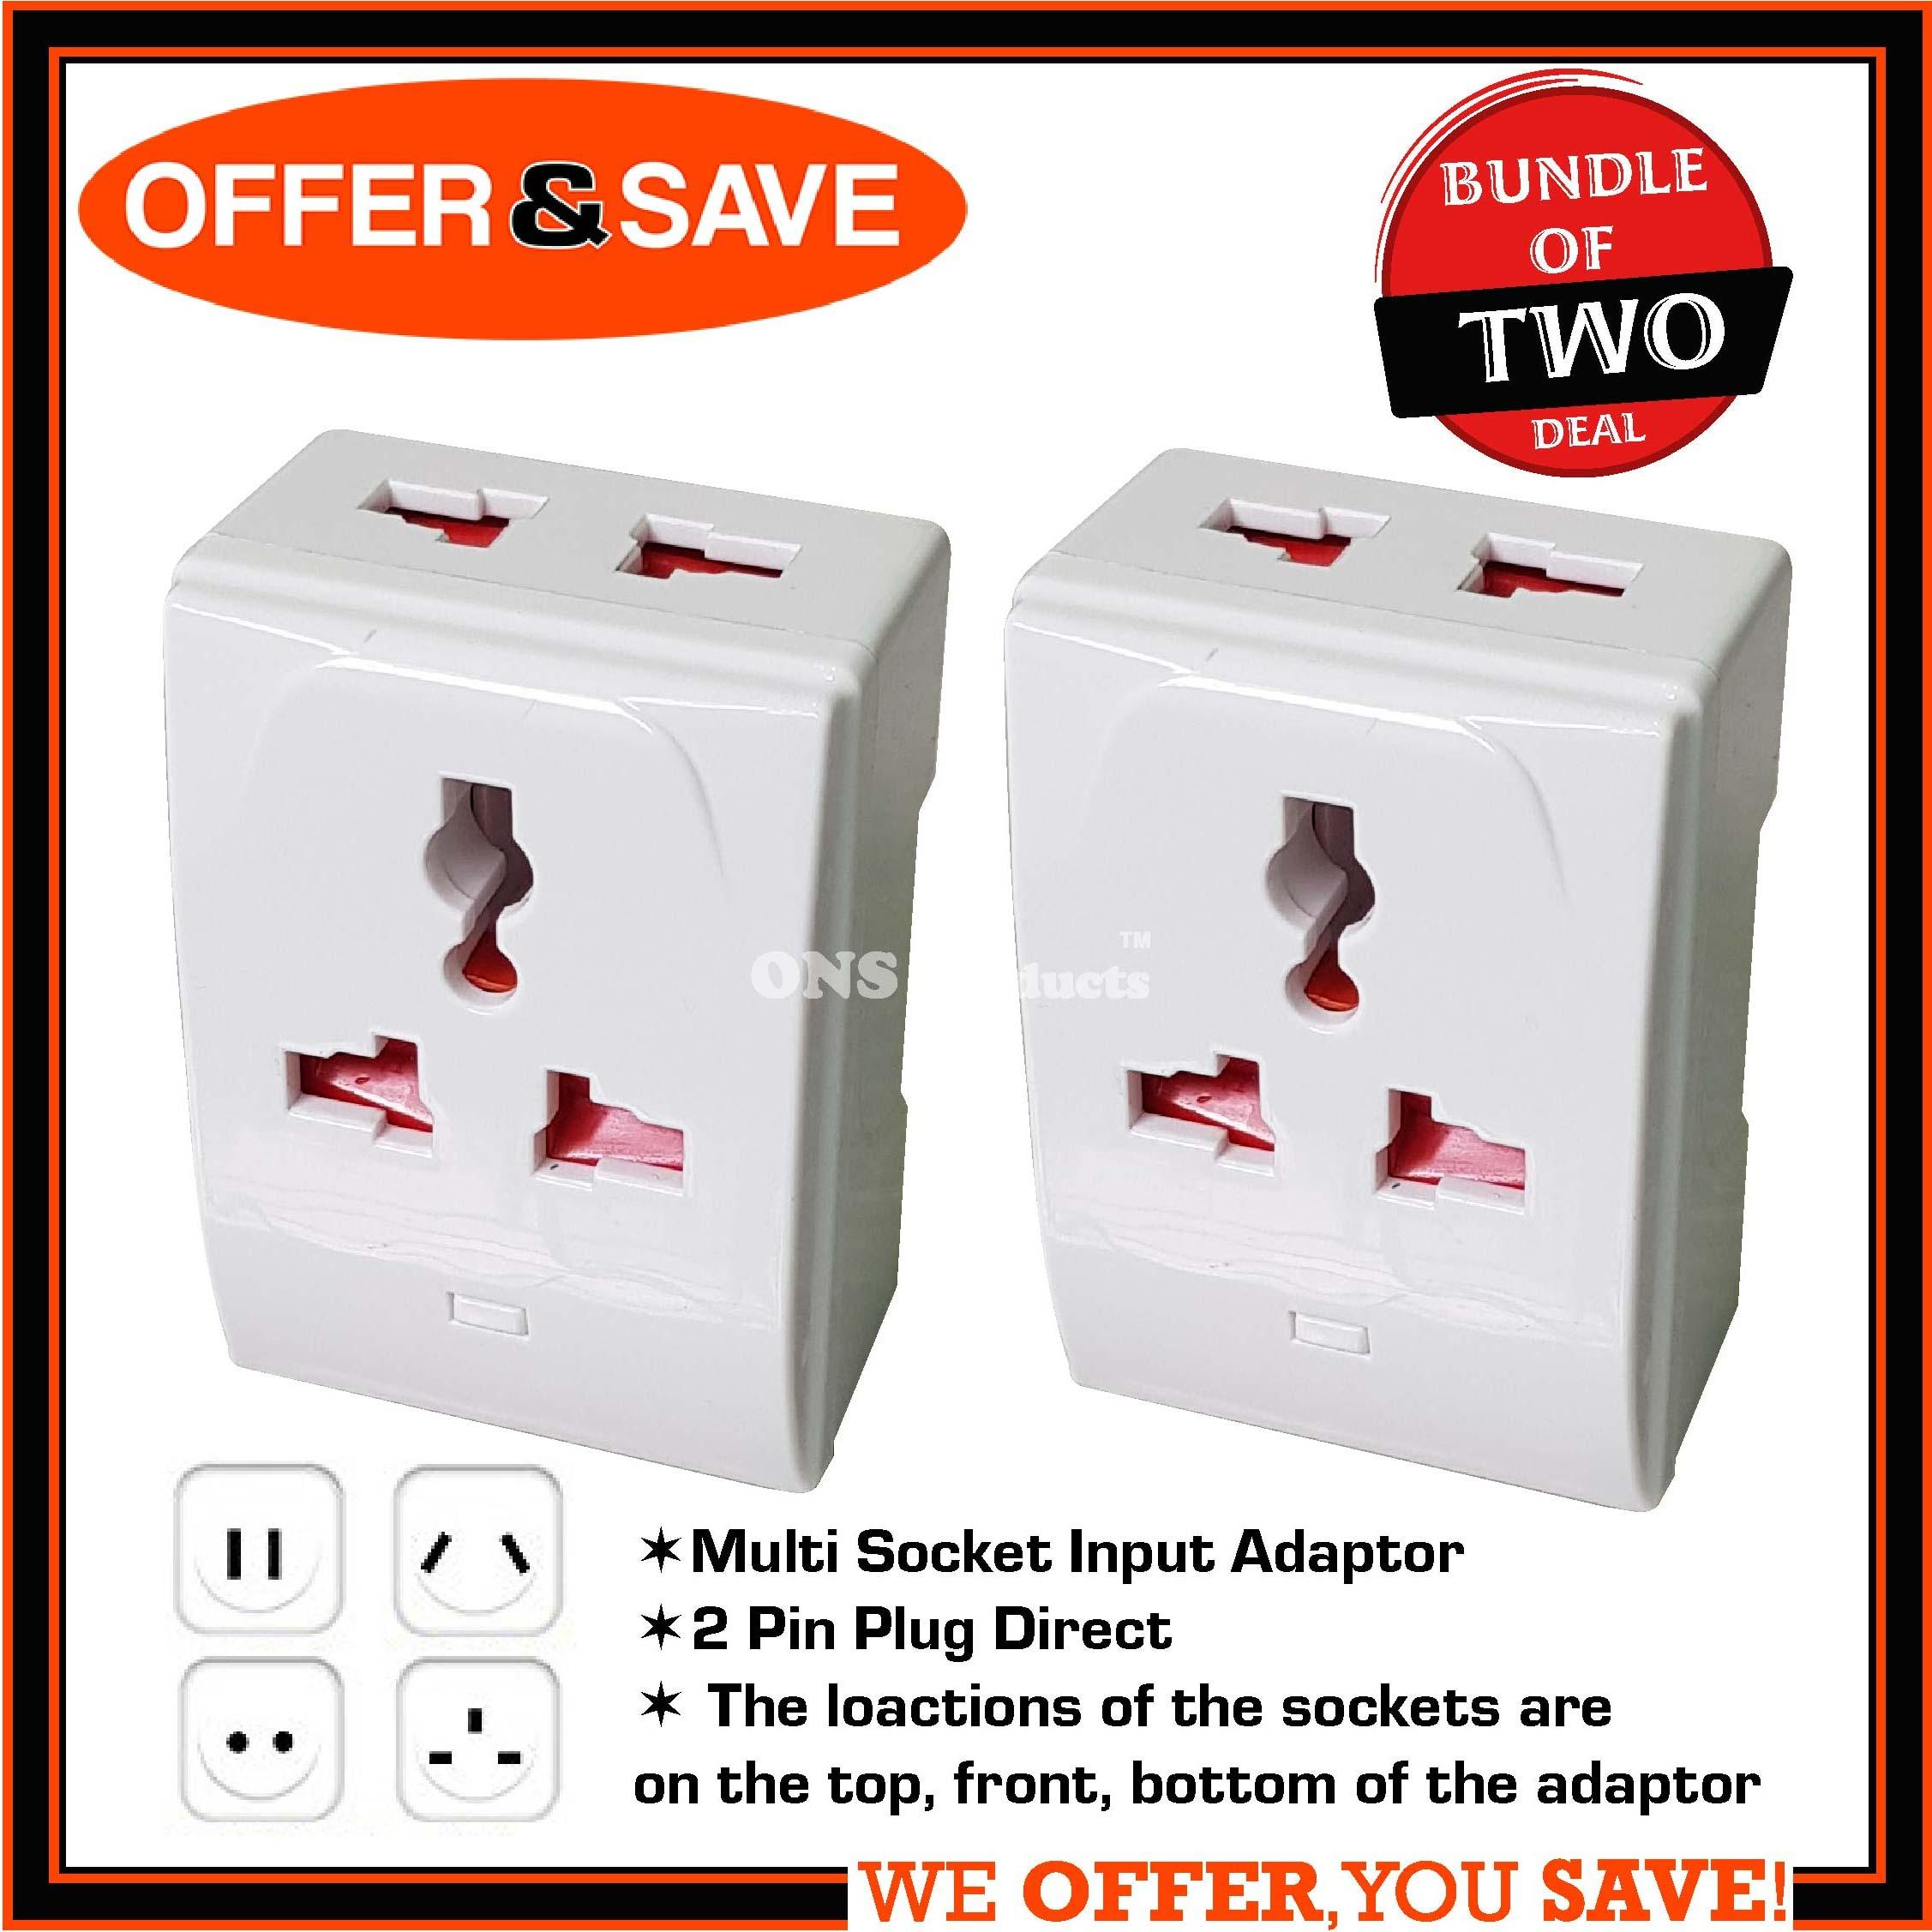 [BUNDLE OF 2] ONS 3 Way Multi Socket Input Adaptor / Multi Adaptor Plug - 929